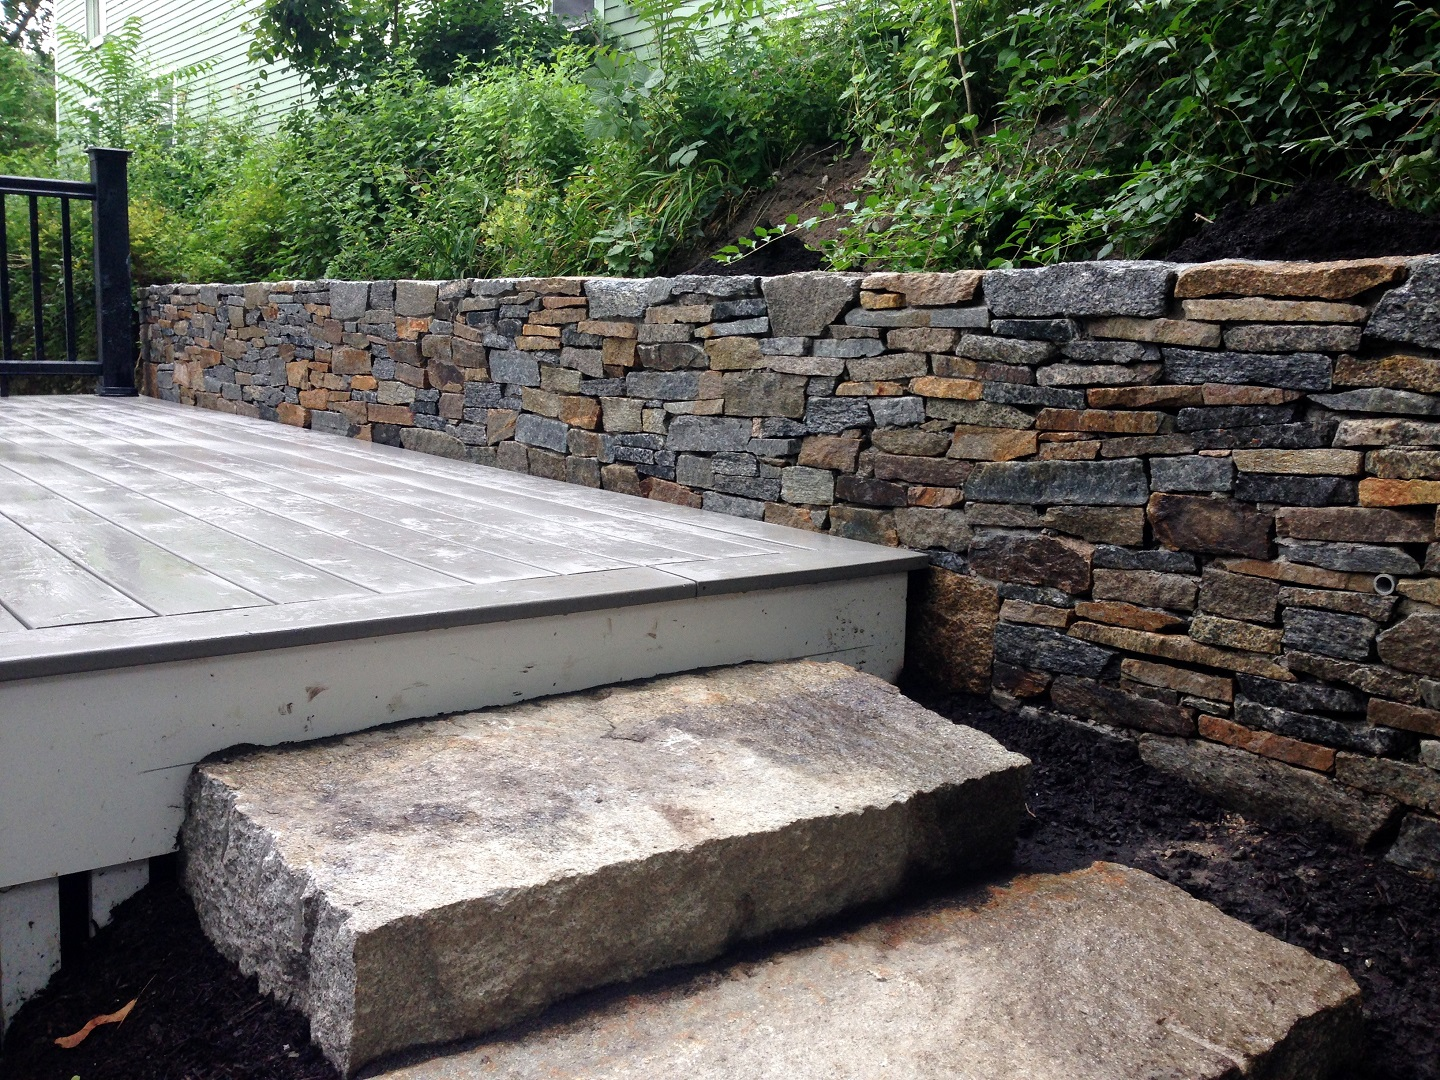 Retaining wall and deck builder in Arlington, MA